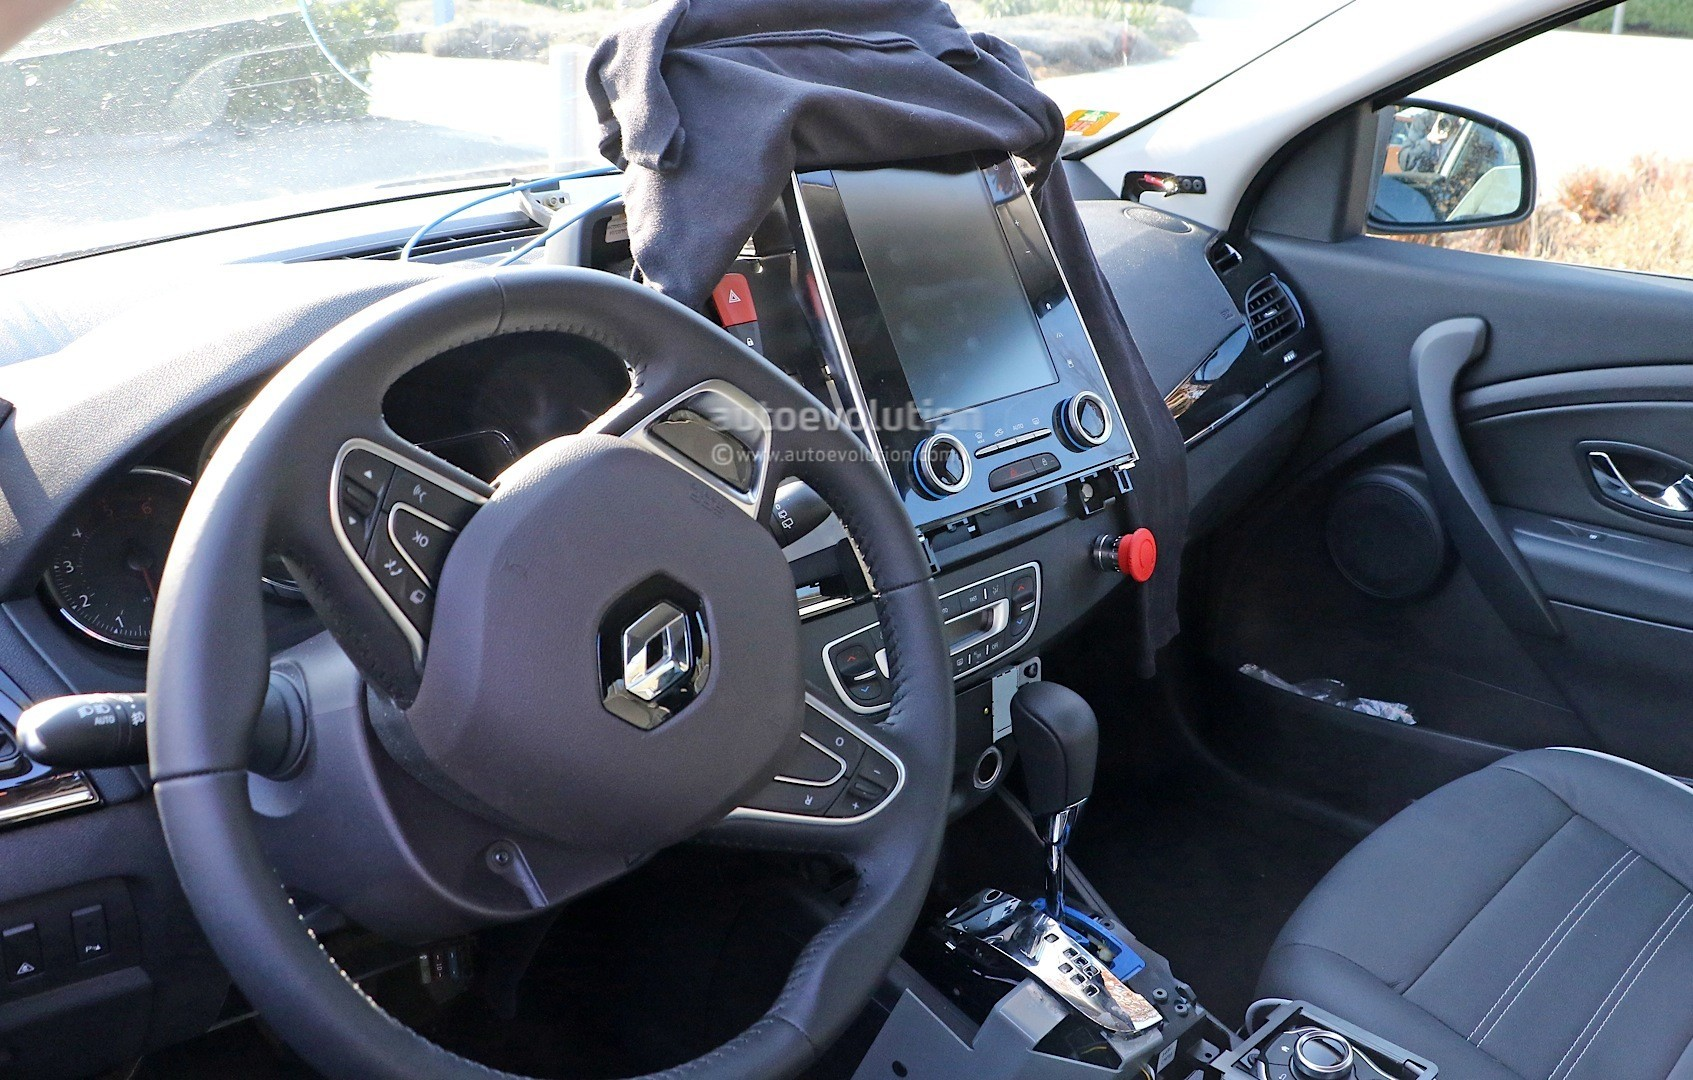 2016 renault laguna estate spied in france photo gallery. Black Bedroom Furniture Sets. Home Design Ideas